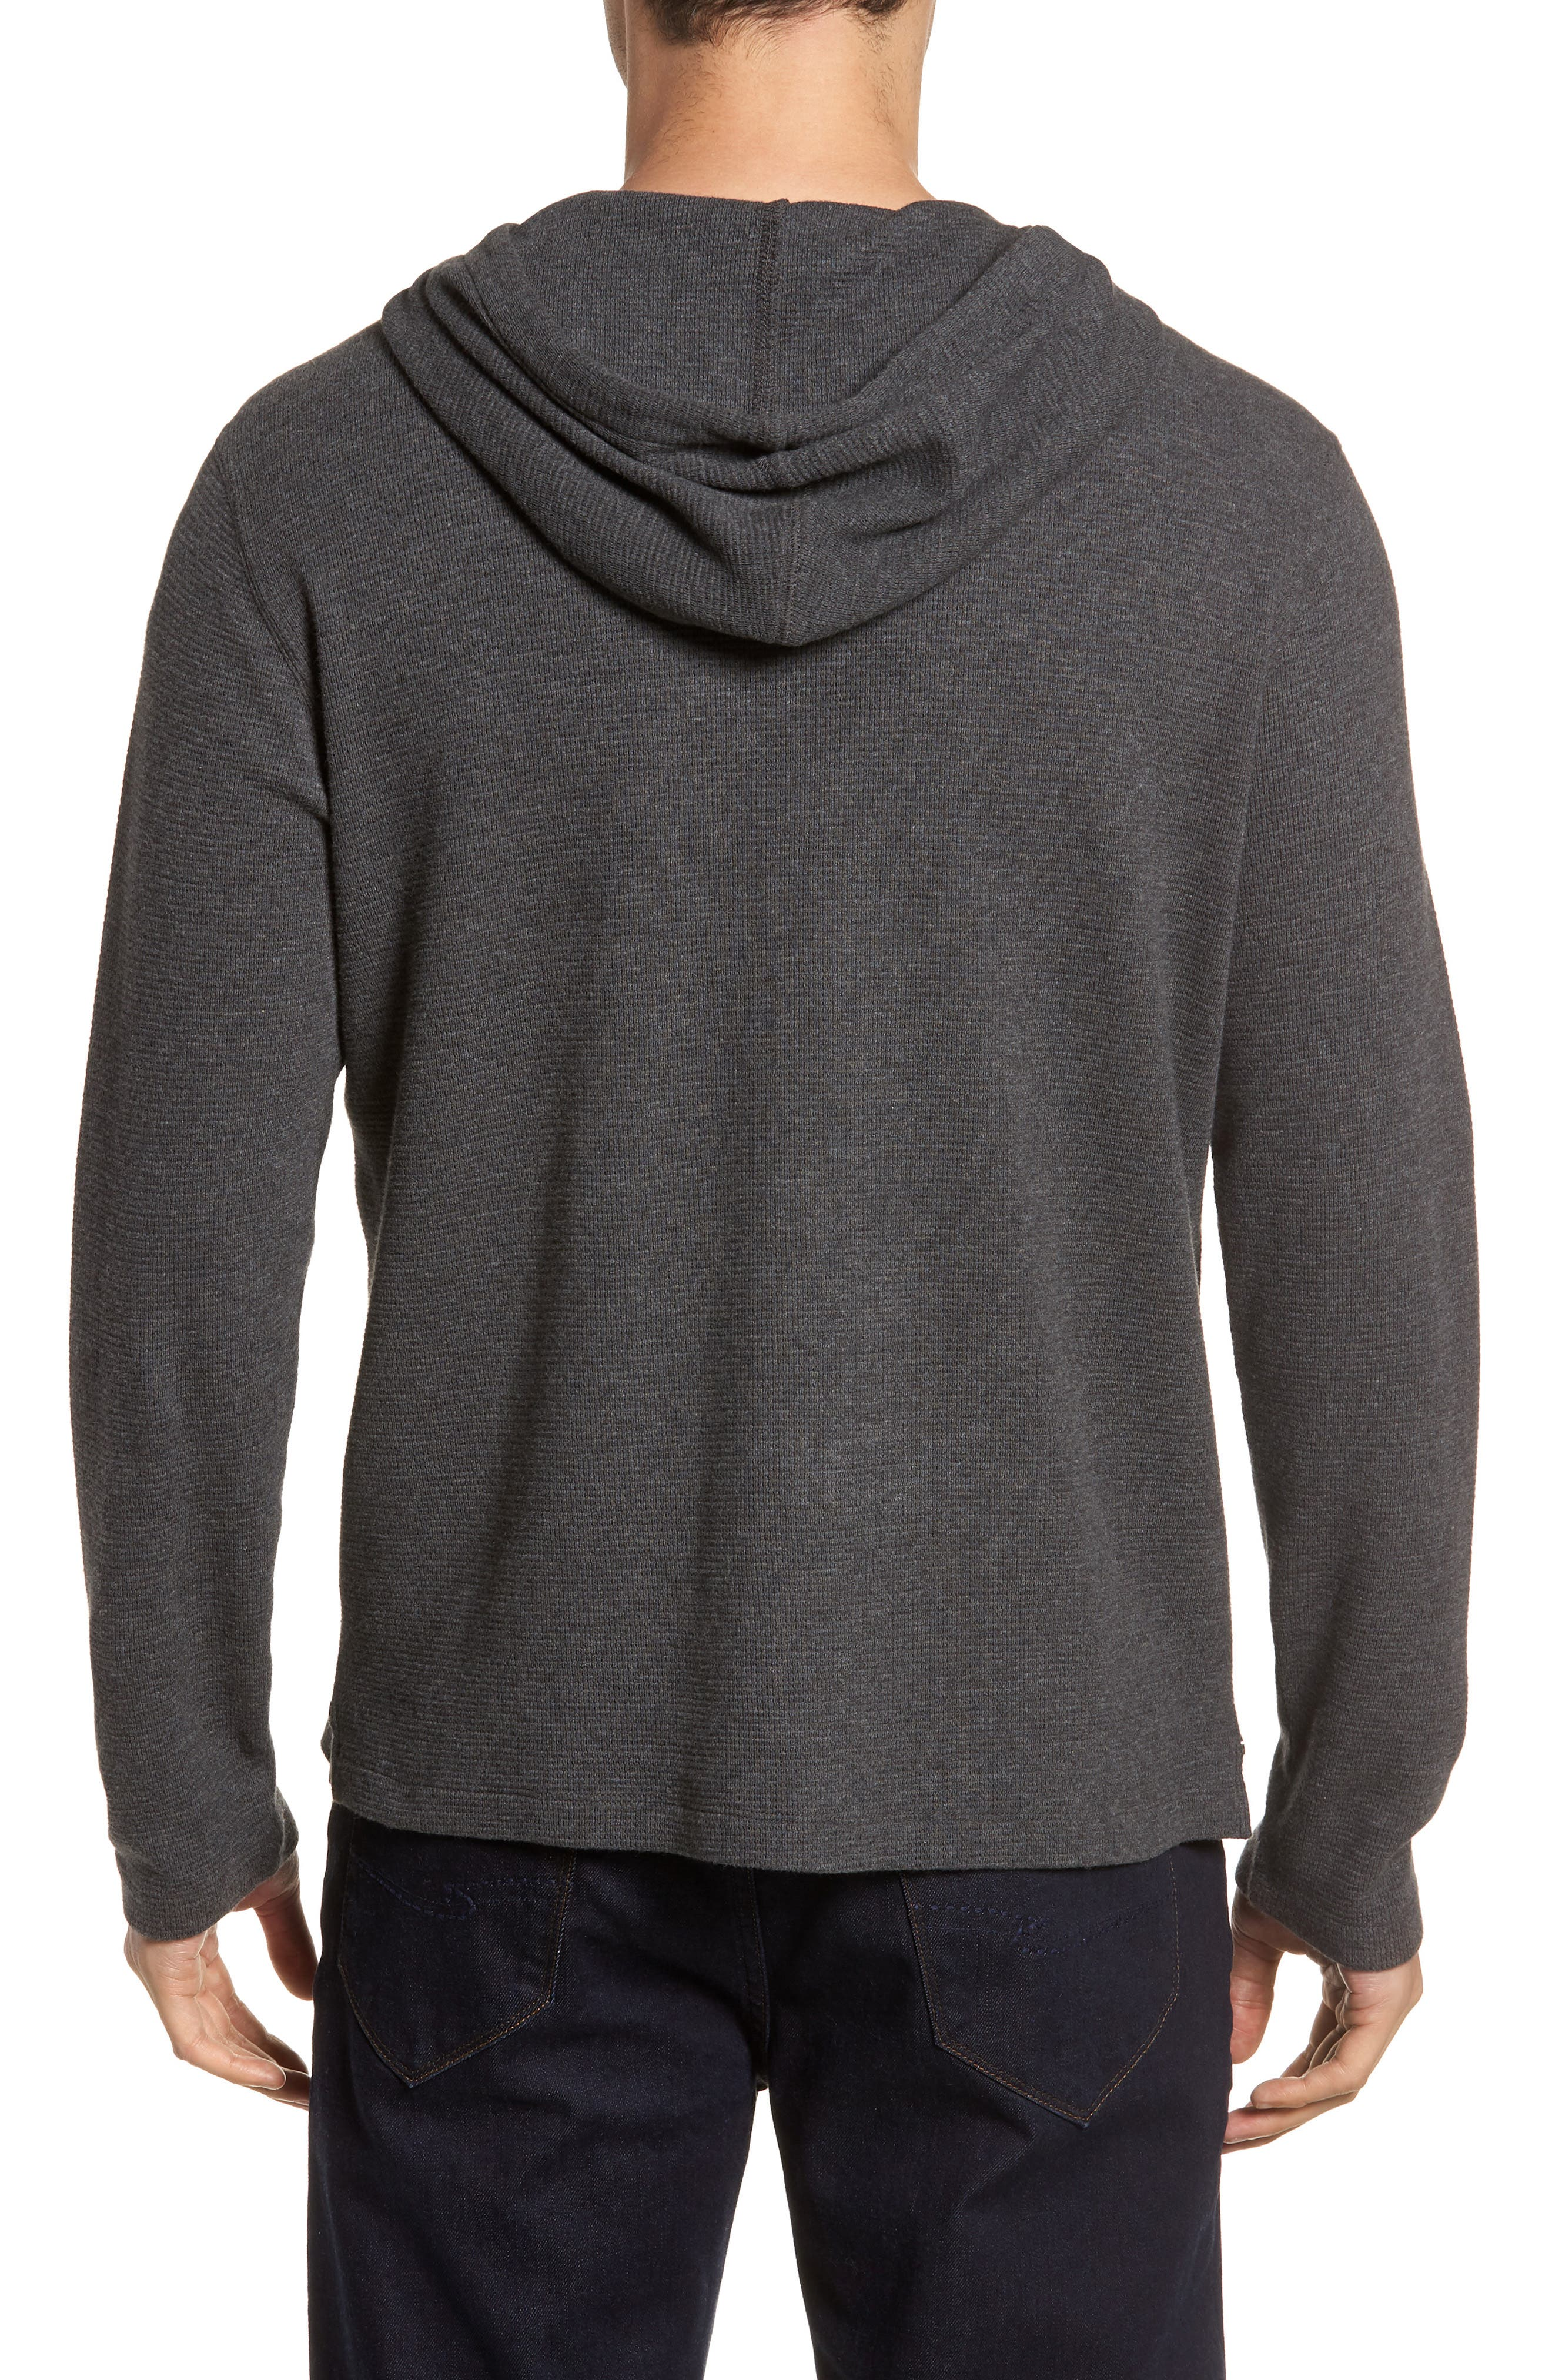 Wilson Pullover Hoodie,                             Alternate thumbnail 2, color,                             CHARCOAL